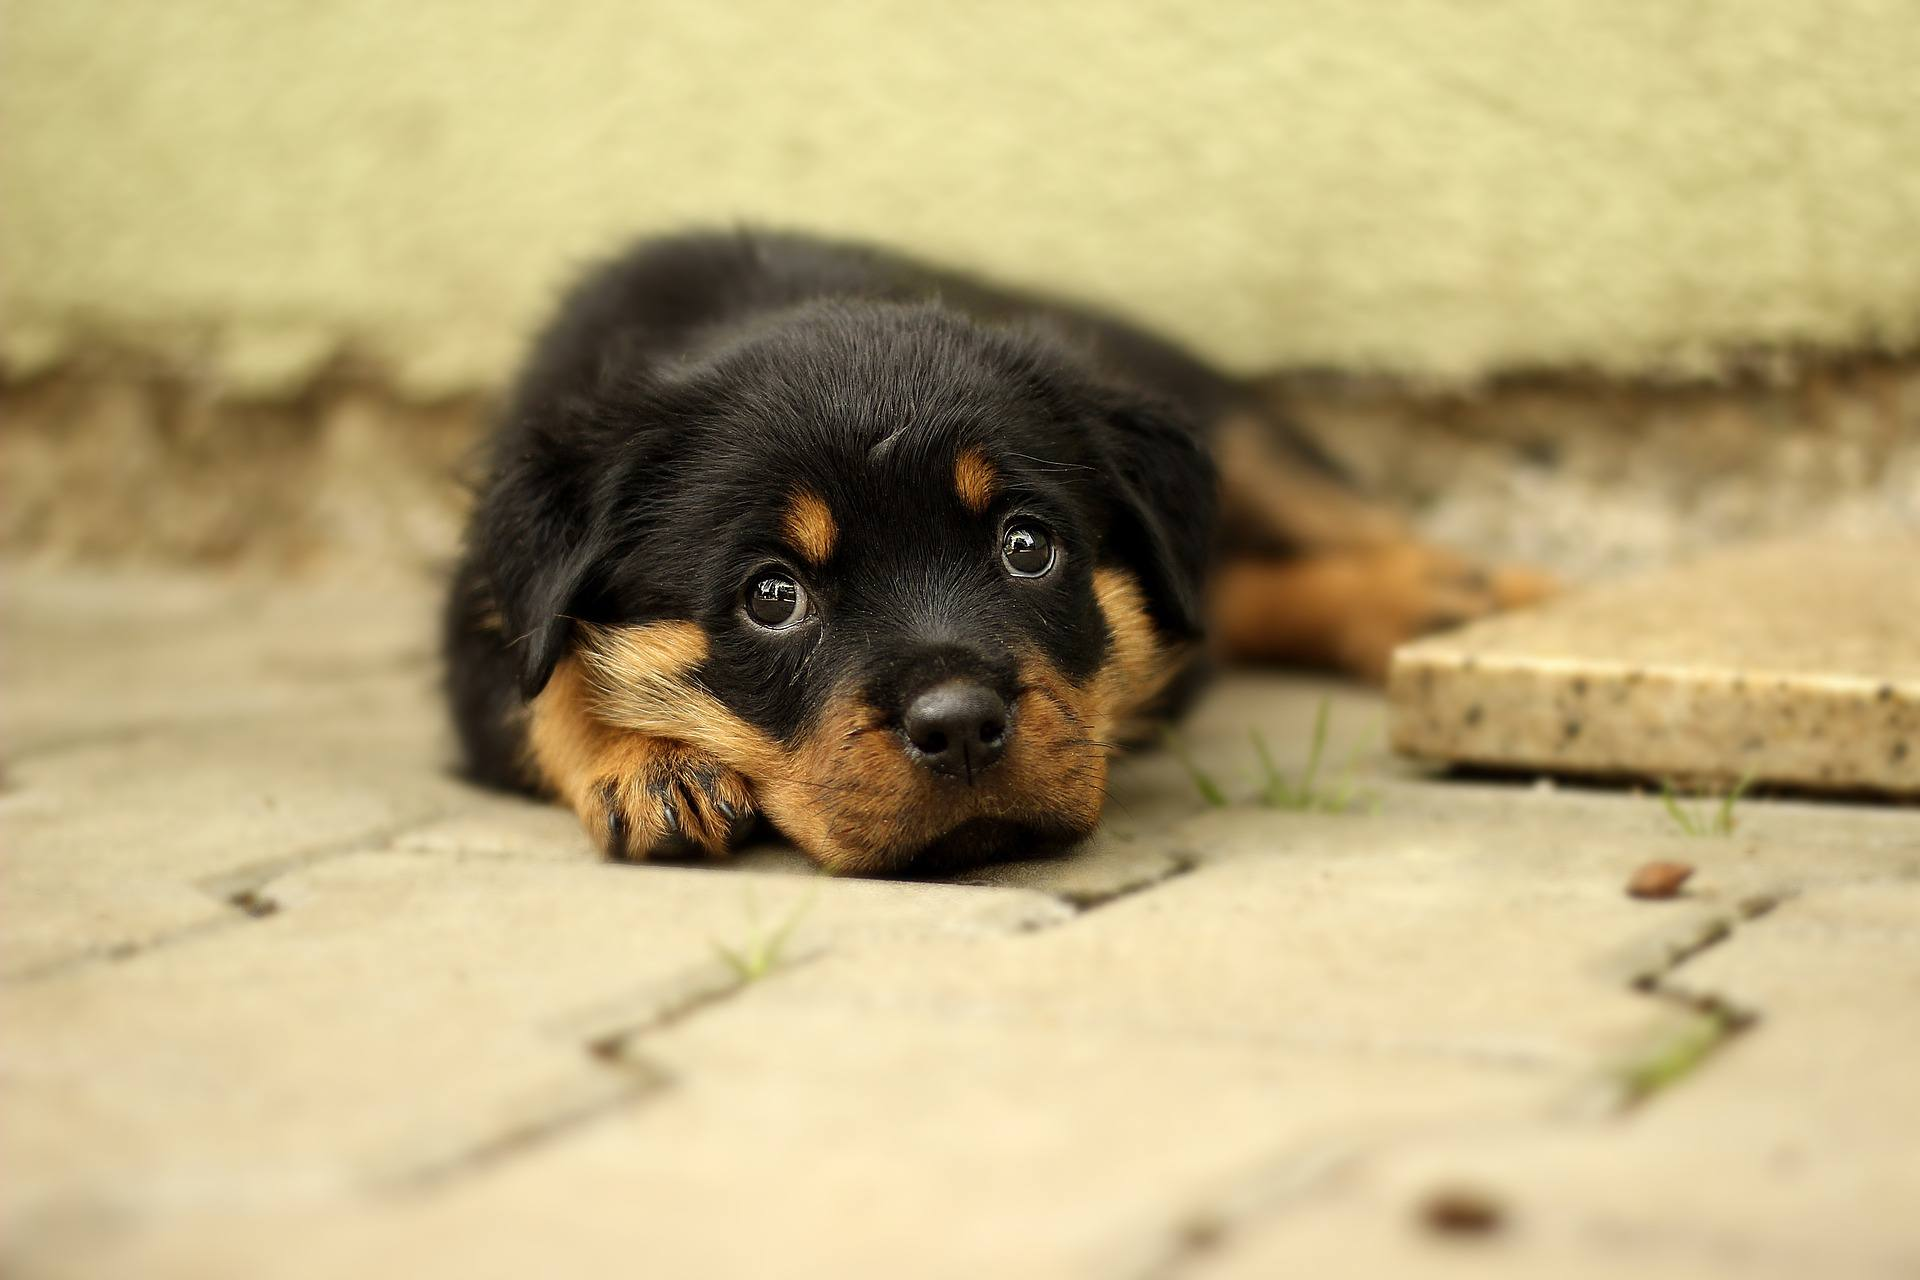 A rottweiler puppy looking into the camera.